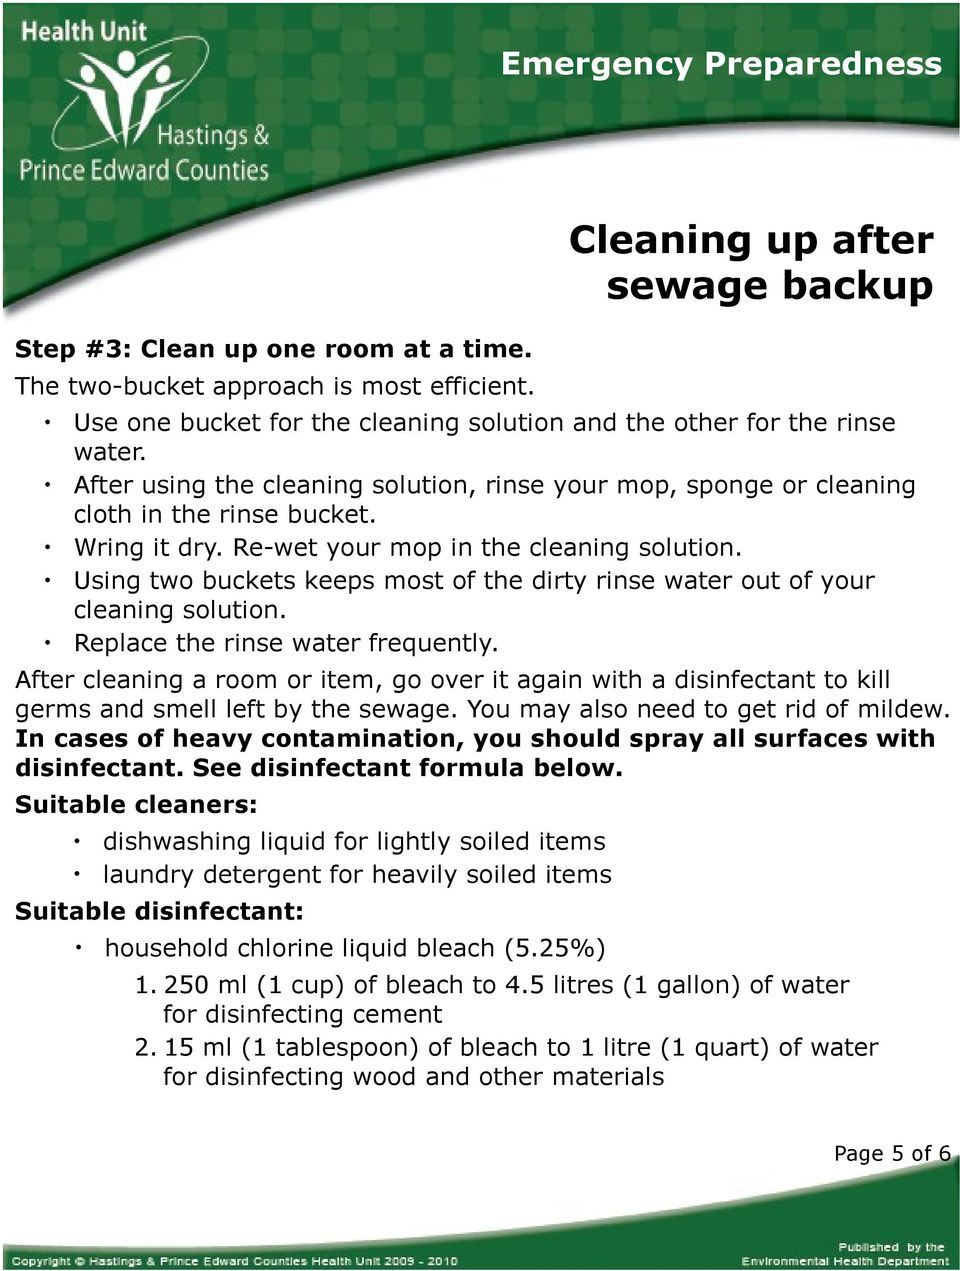 Using two buckets keeps most of the dirty rinse water out of your cleaning solution. Replace the rinse water frequently.